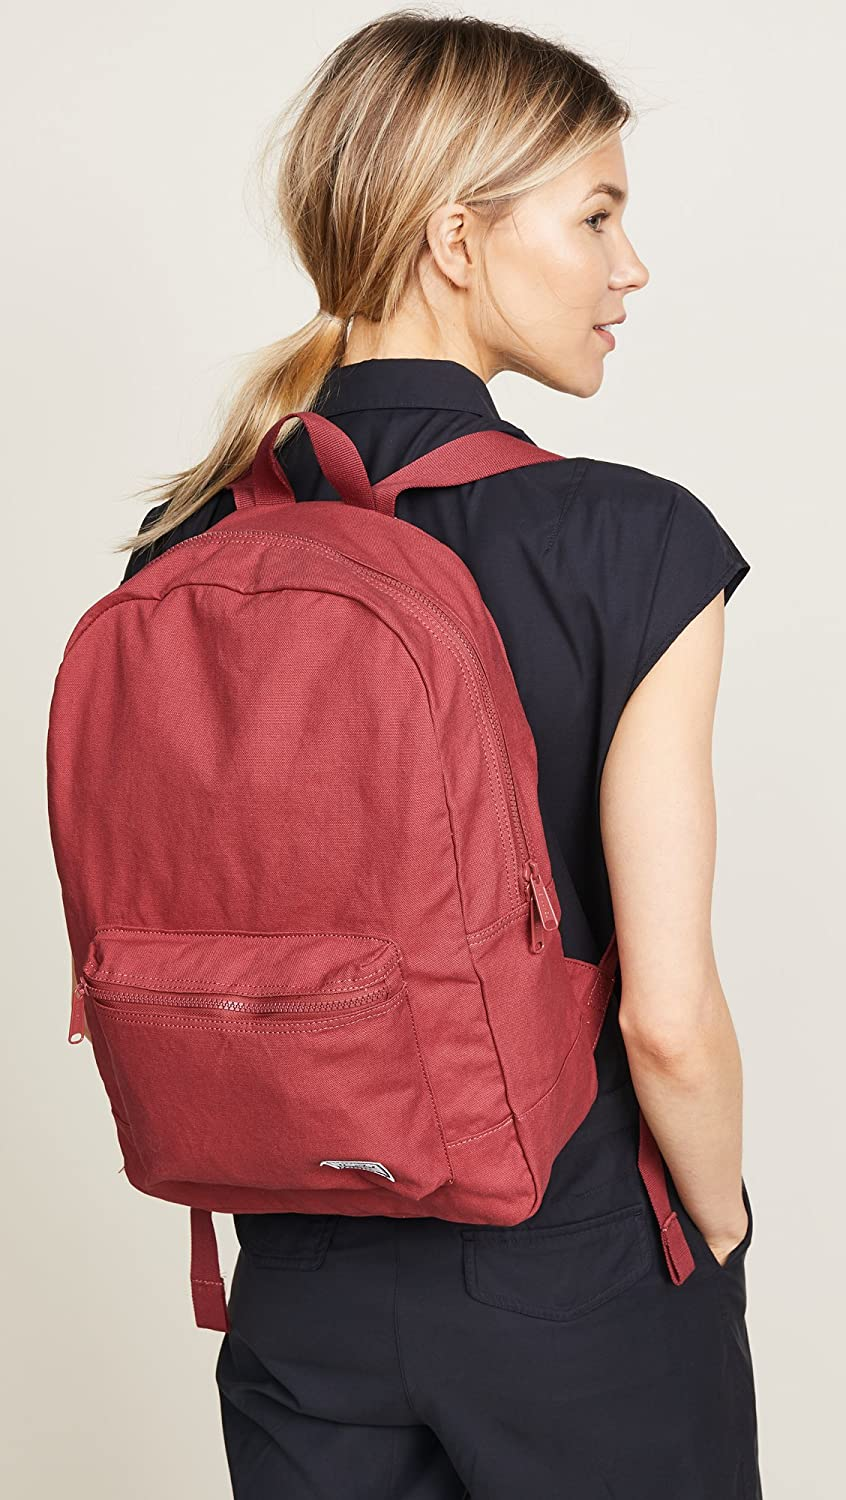 Herschel Supply Co. Women s Packable Backpack, Brick Red, One Size